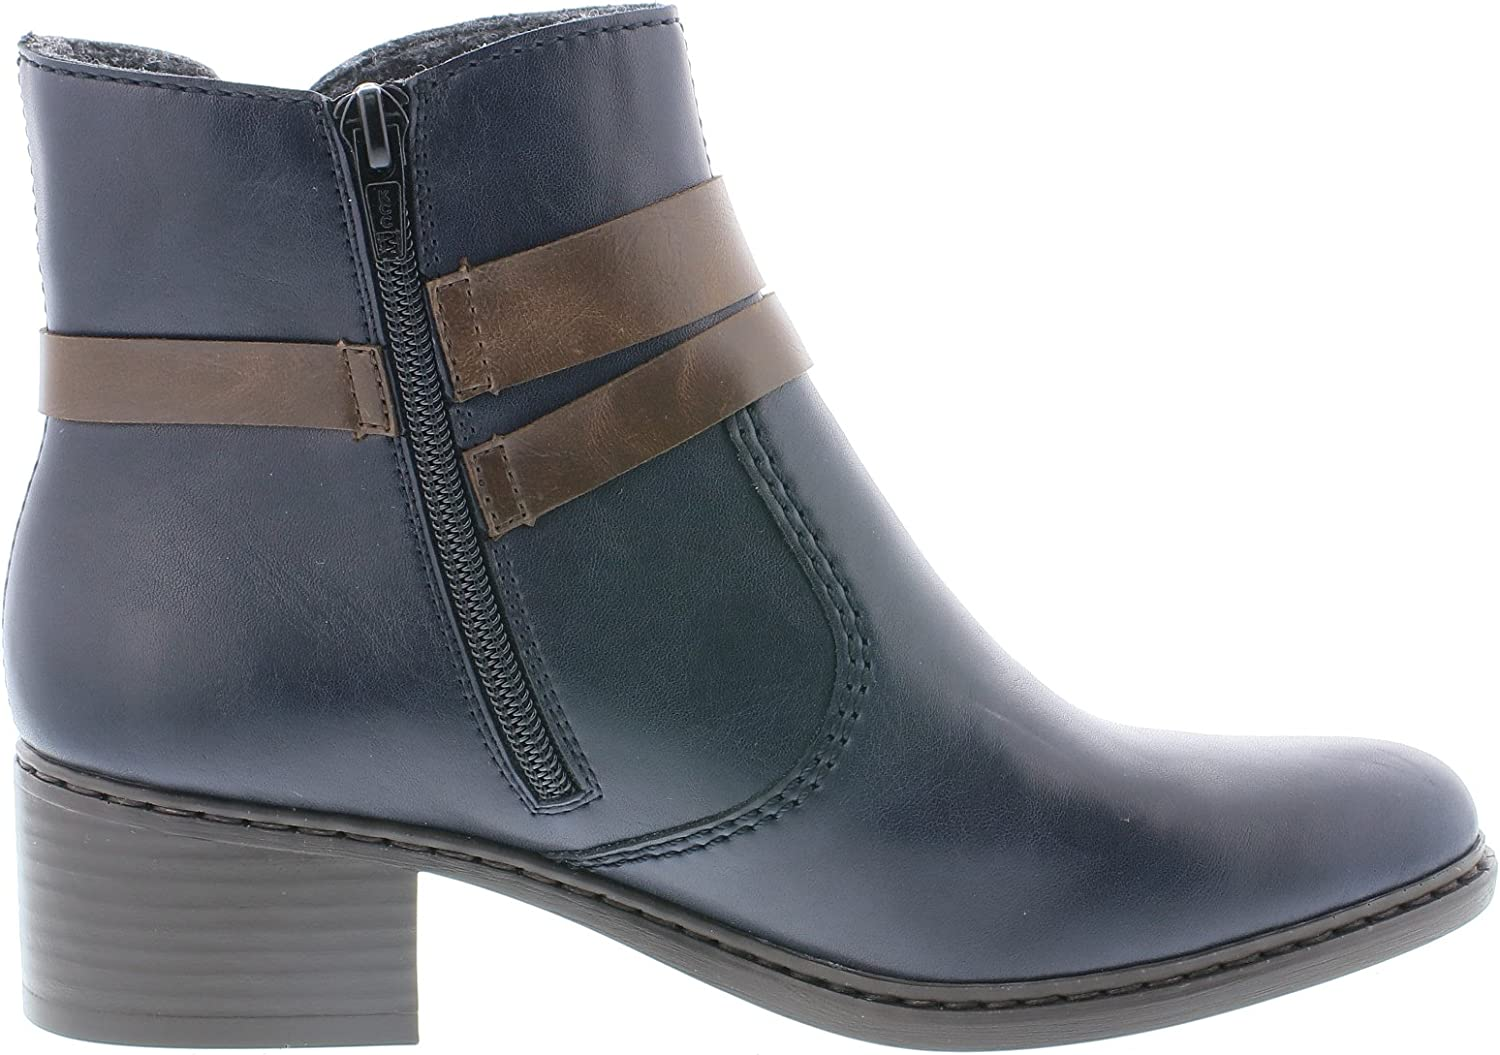 Rieker 77683 Womens Casual Ankle Boots Blu